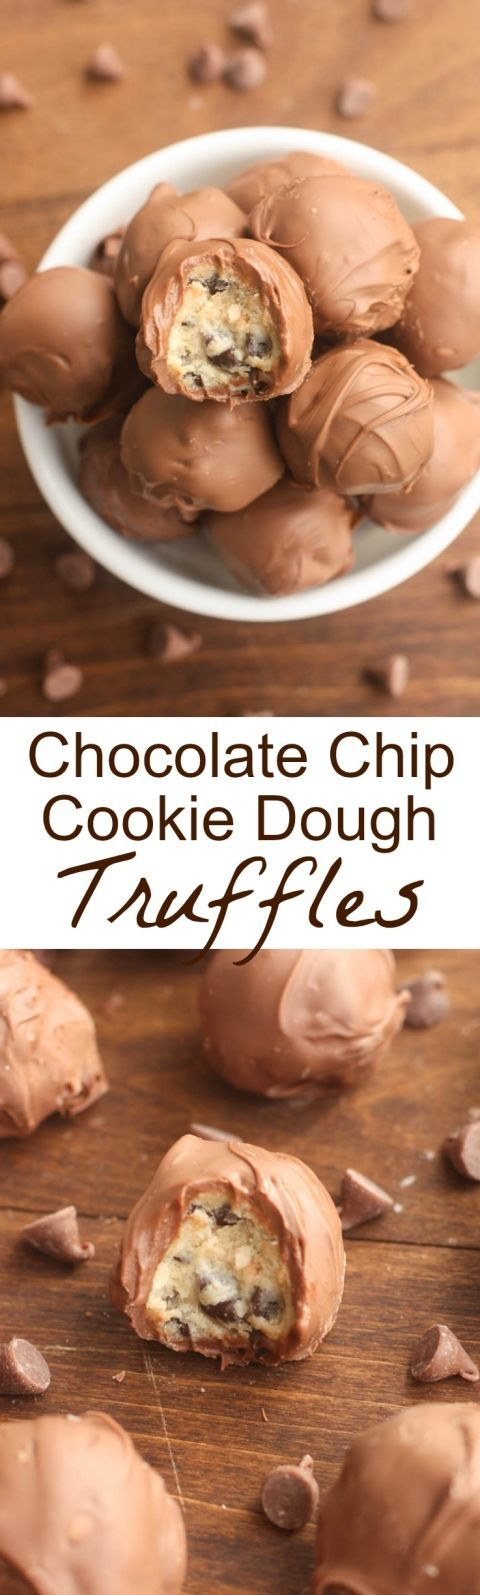 Best 20+ Melting chocolate chips ideas on Pinterest   Melted ...